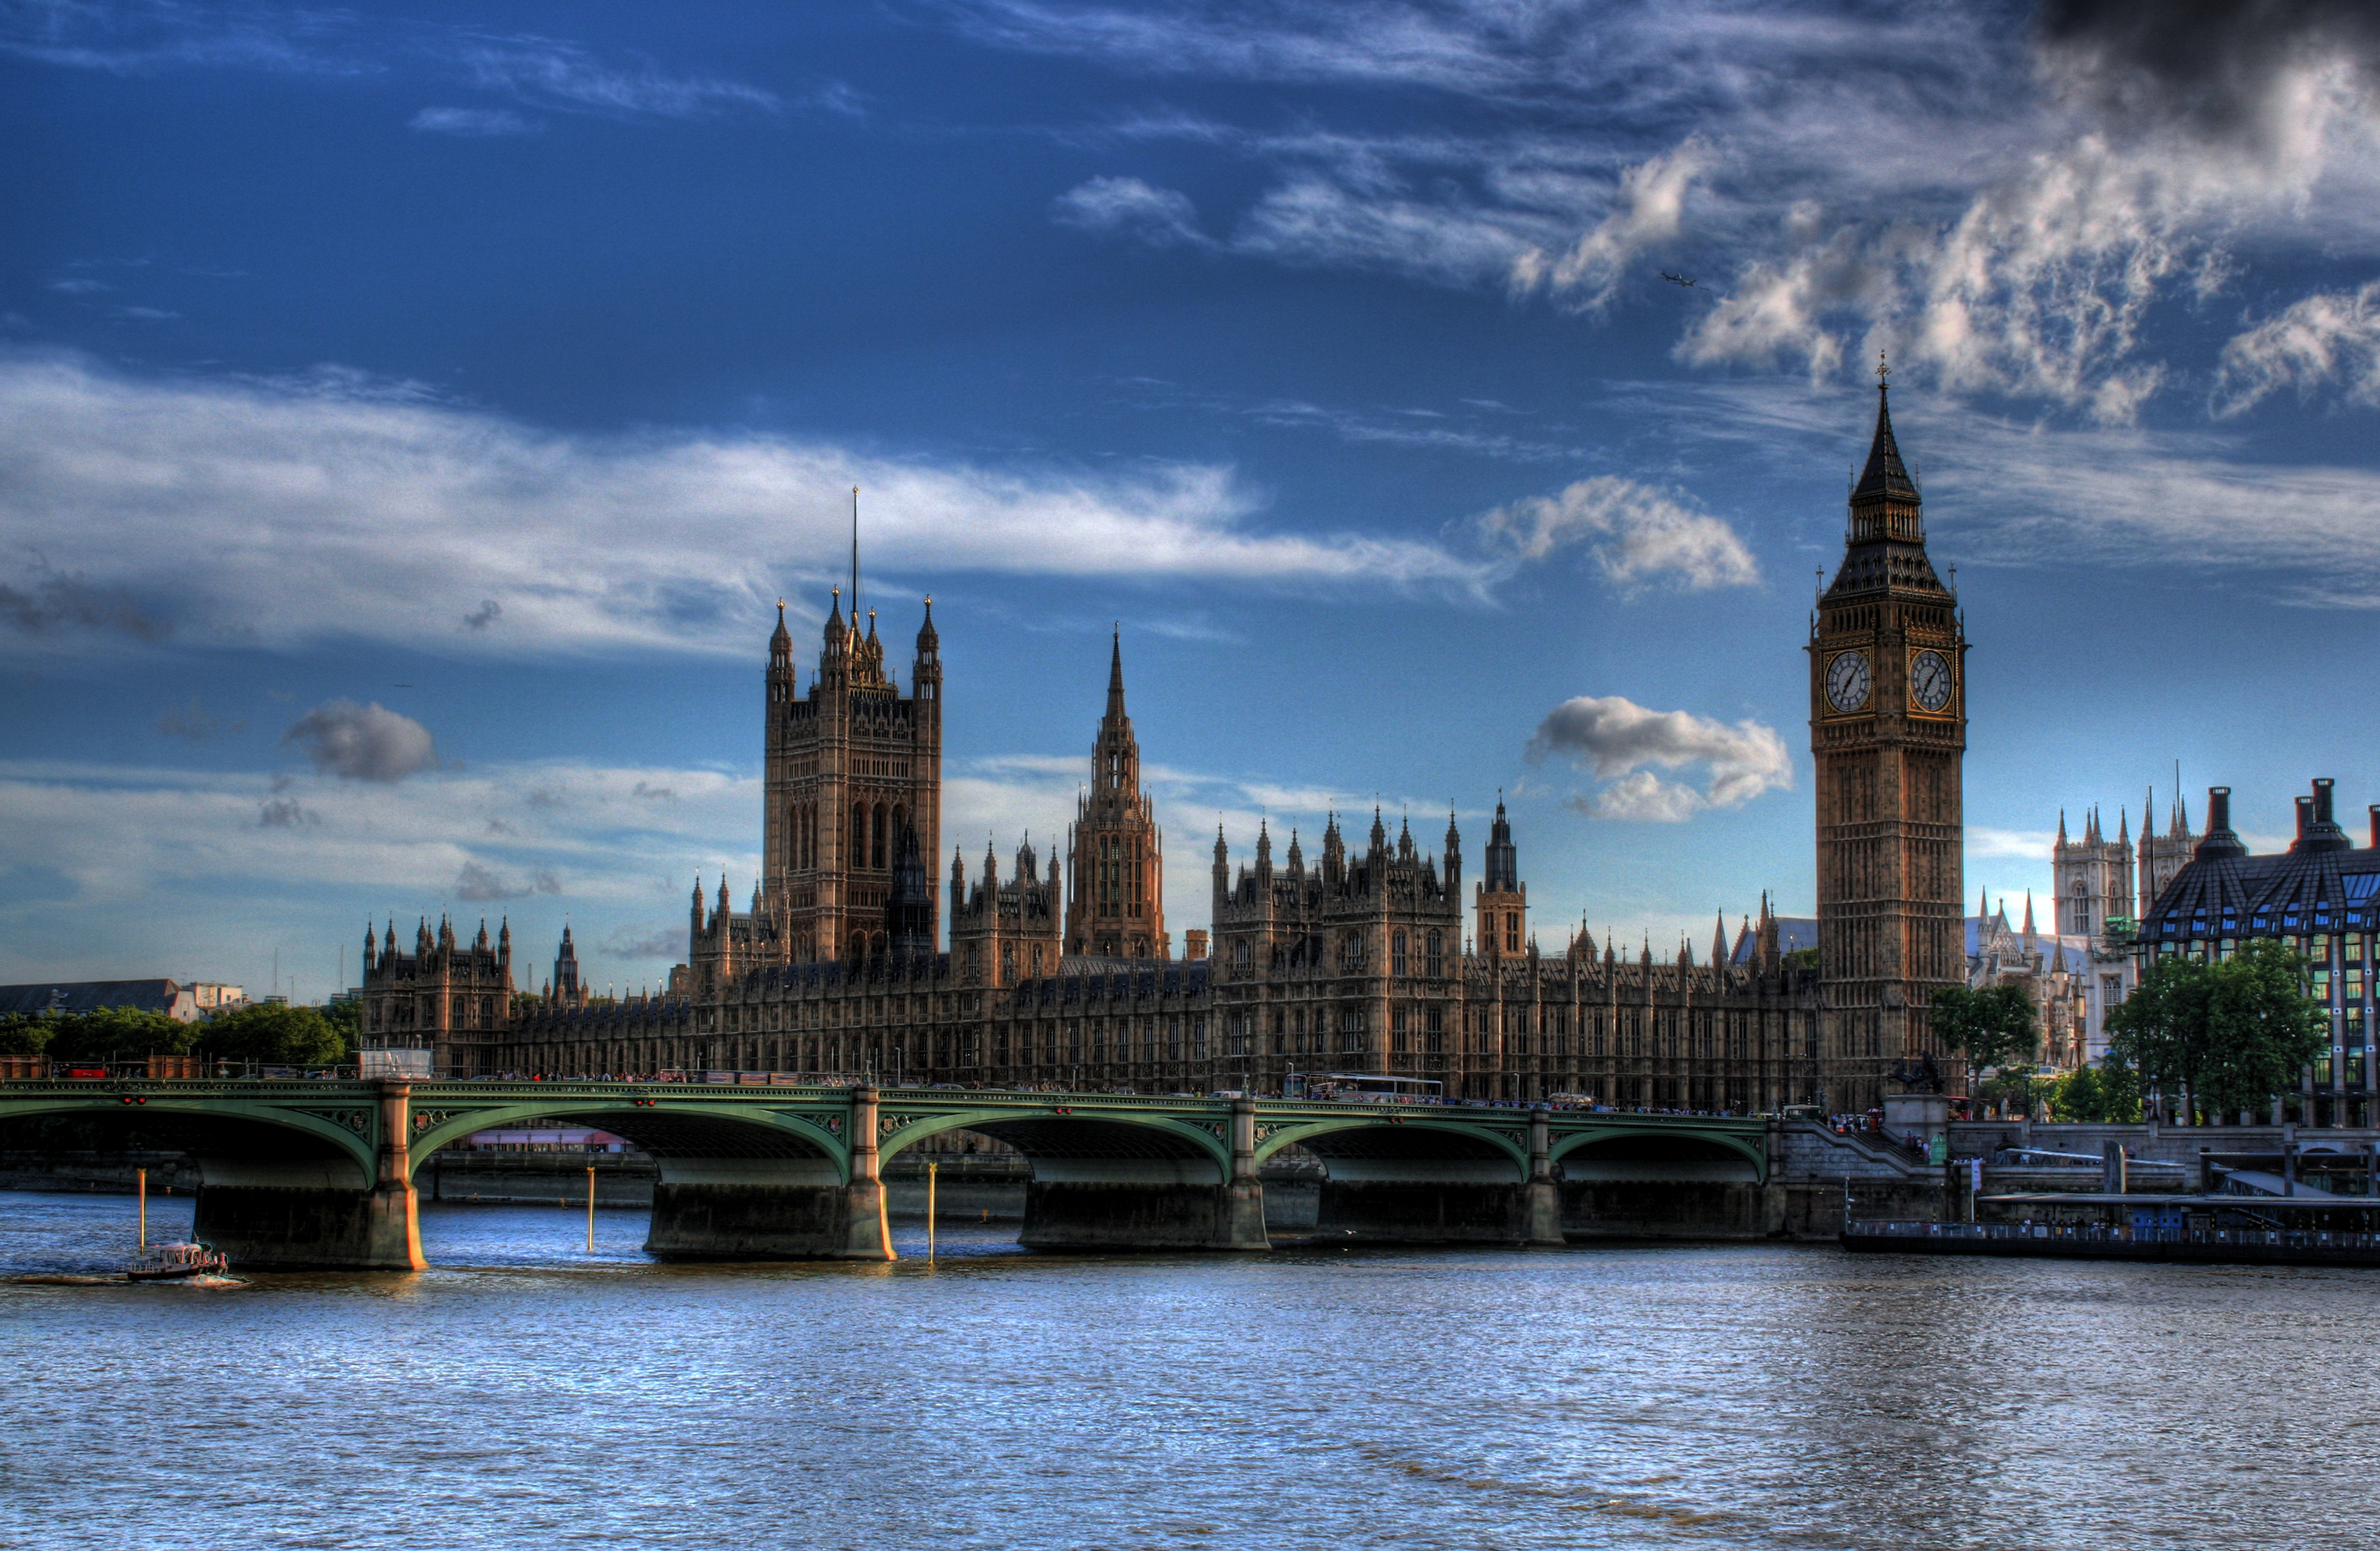 Westminster - Wikipedia